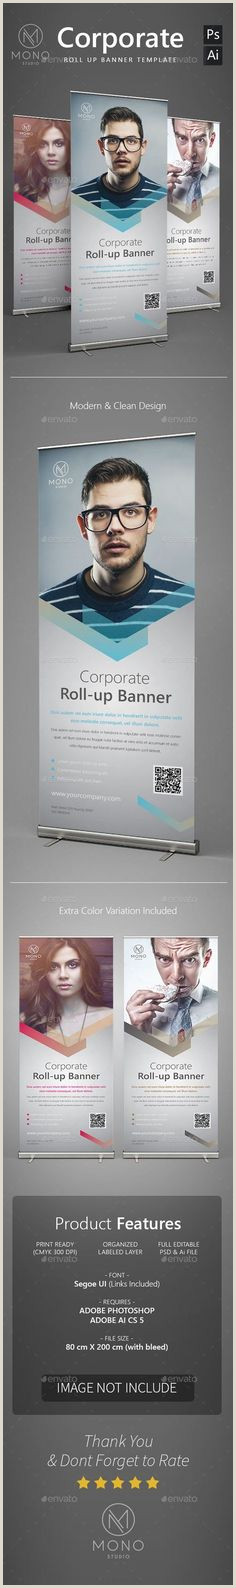 Pull Up Banners Dimensions Best Of Conference Banners